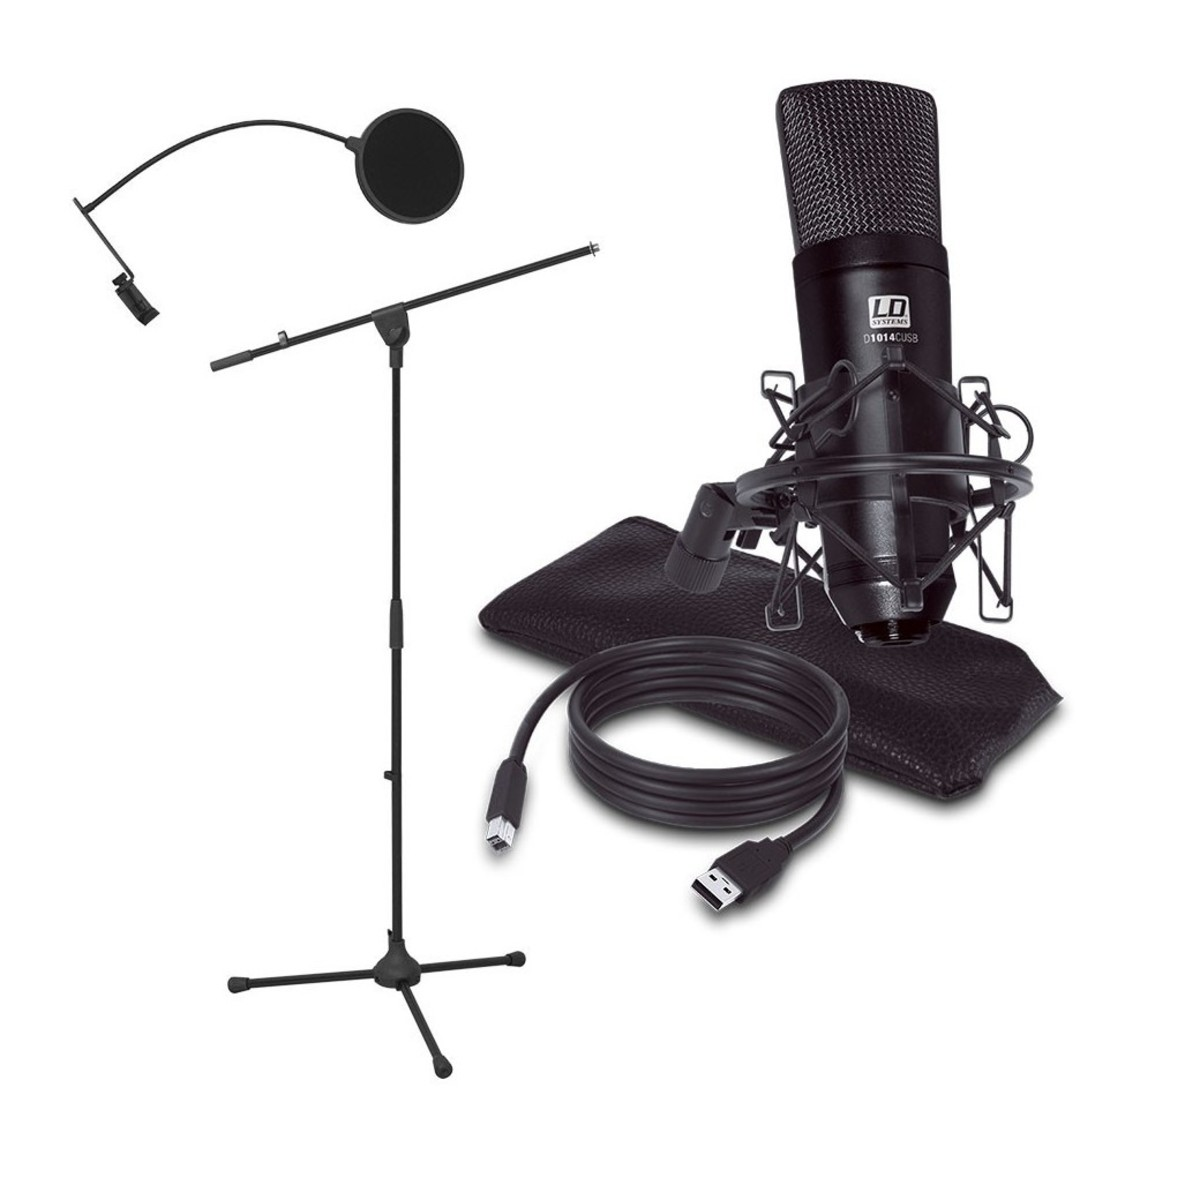 ld systems usb microphone podcast kit at gear4music. Black Bedroom Furniture Sets. Home Design Ideas